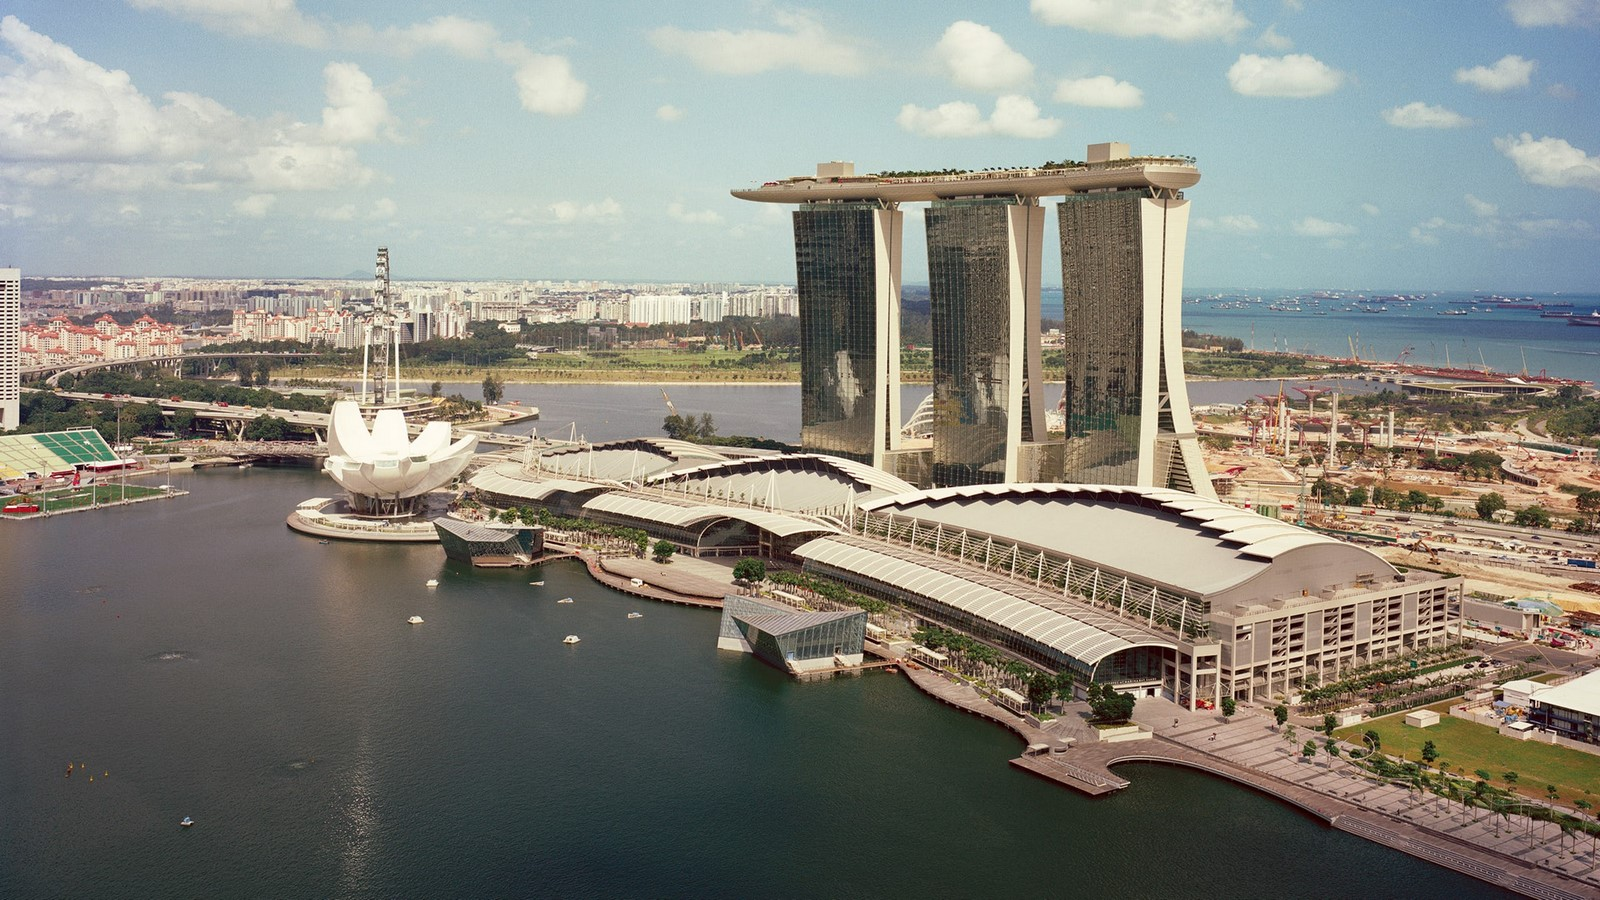 Architecture in Singapore - Marina Bay Sands - Sheet1